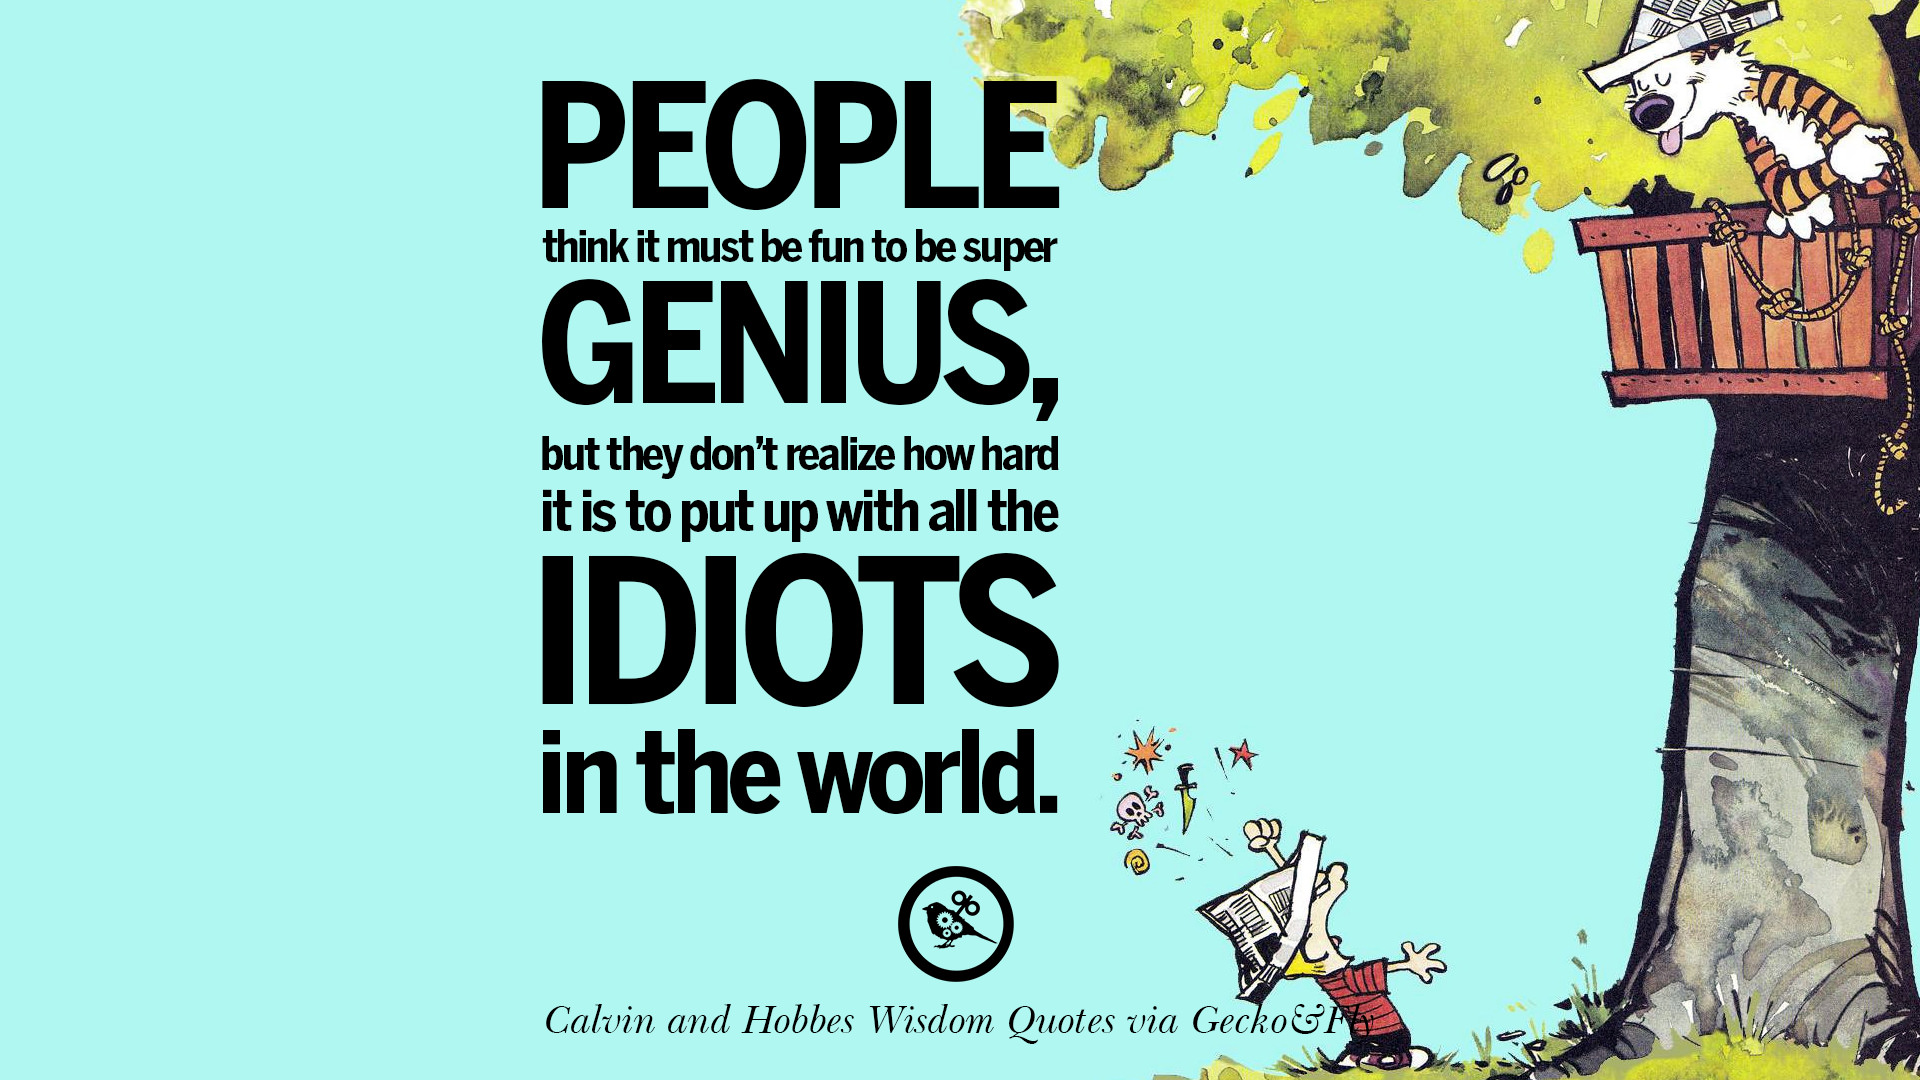 Fall Live Wallpaper Phone 10 Calvin And Hobbes Words Of Wisdom Quotes And Wise Sayings